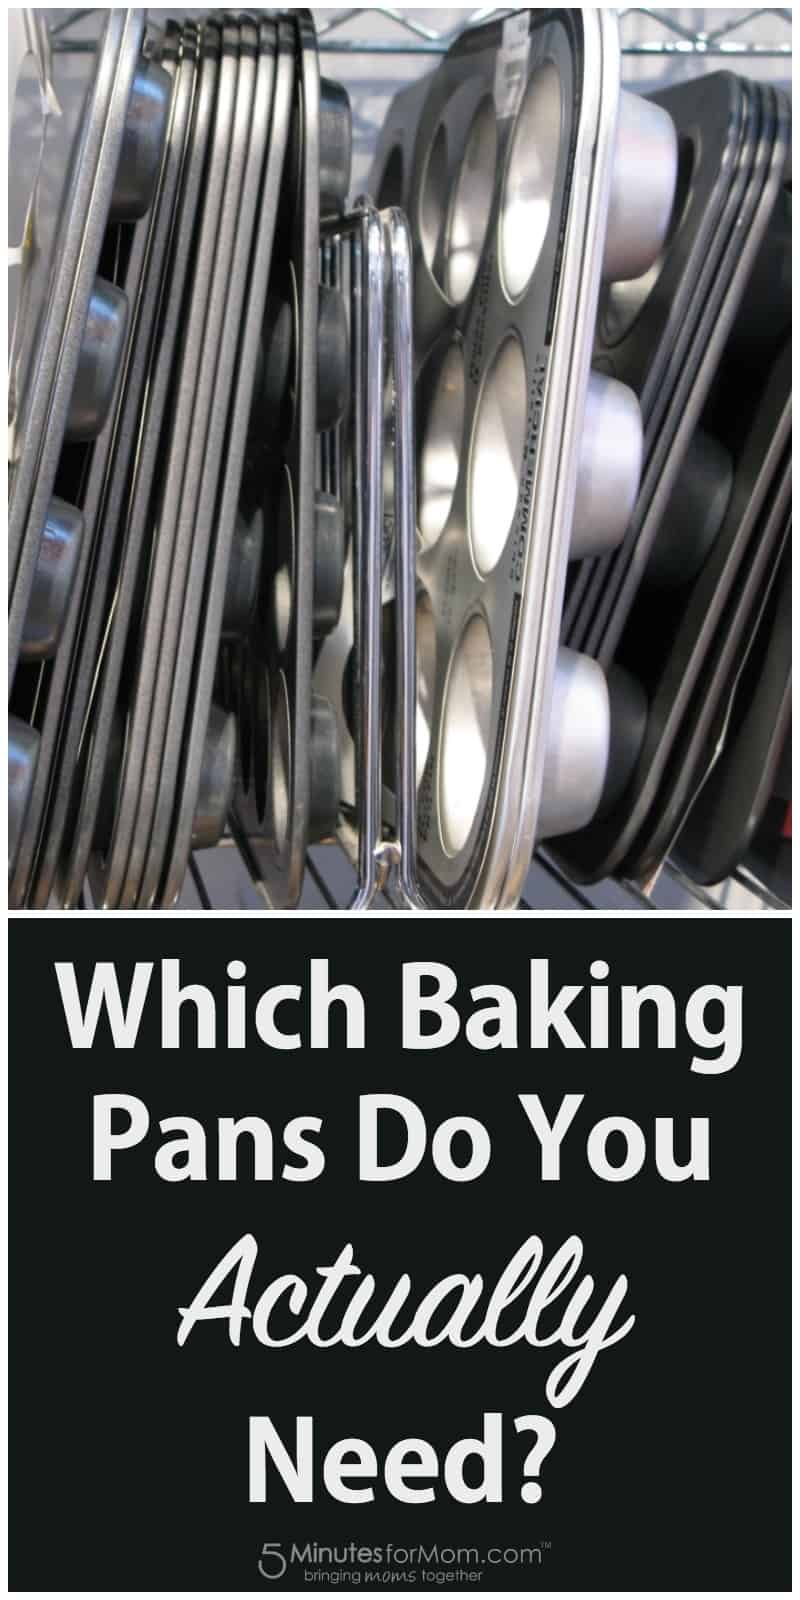 Which baking pans do you actually need